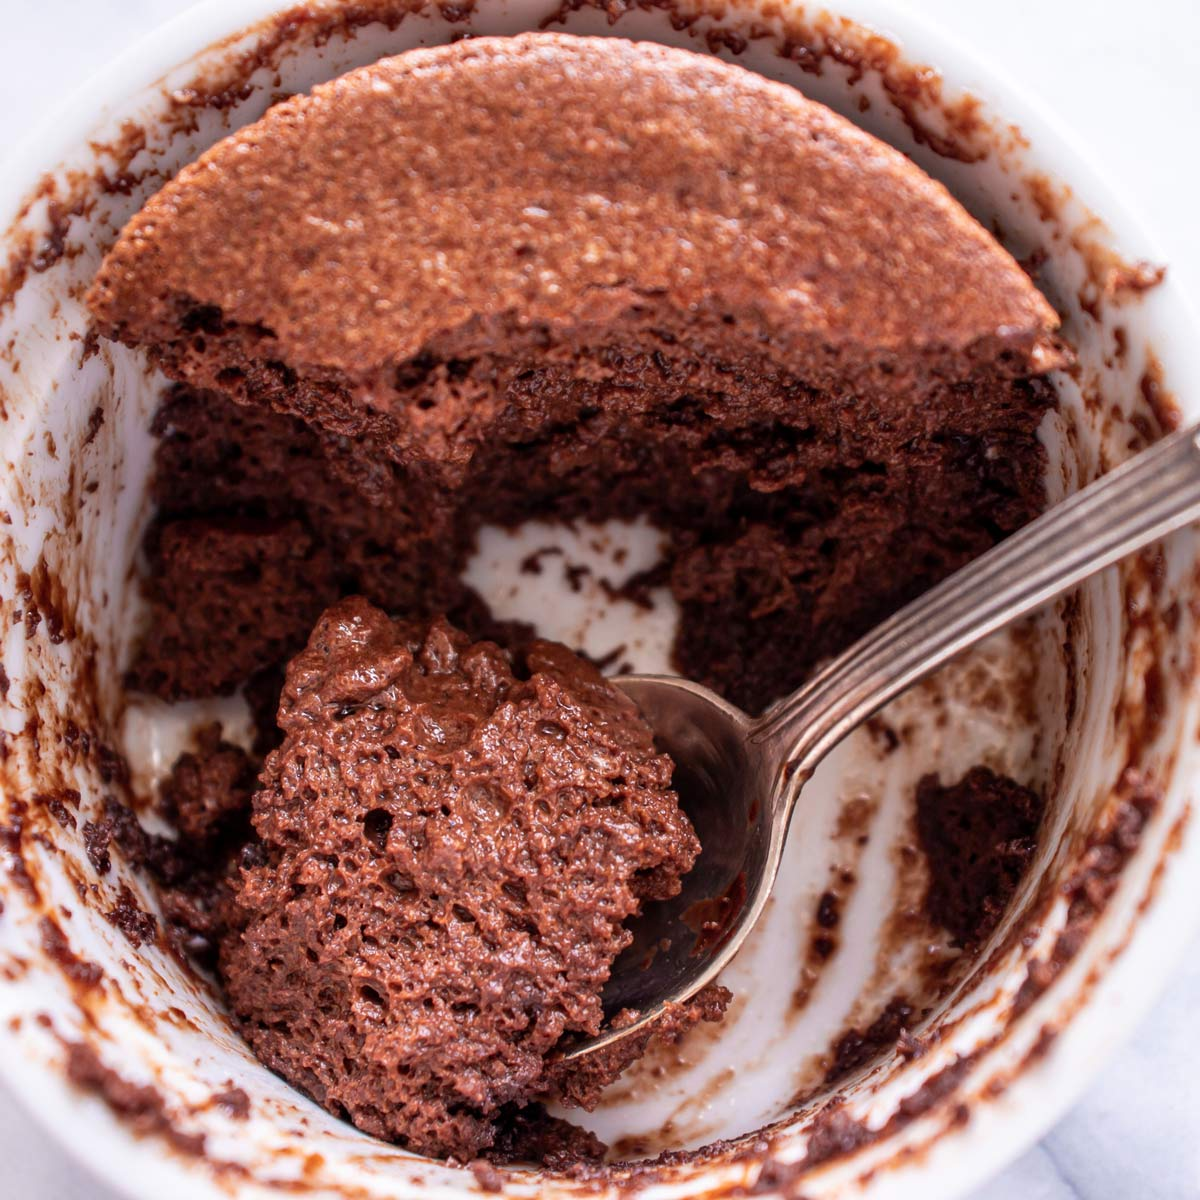 A half-eaten chocolate soufflé with a spoon scooping some up.